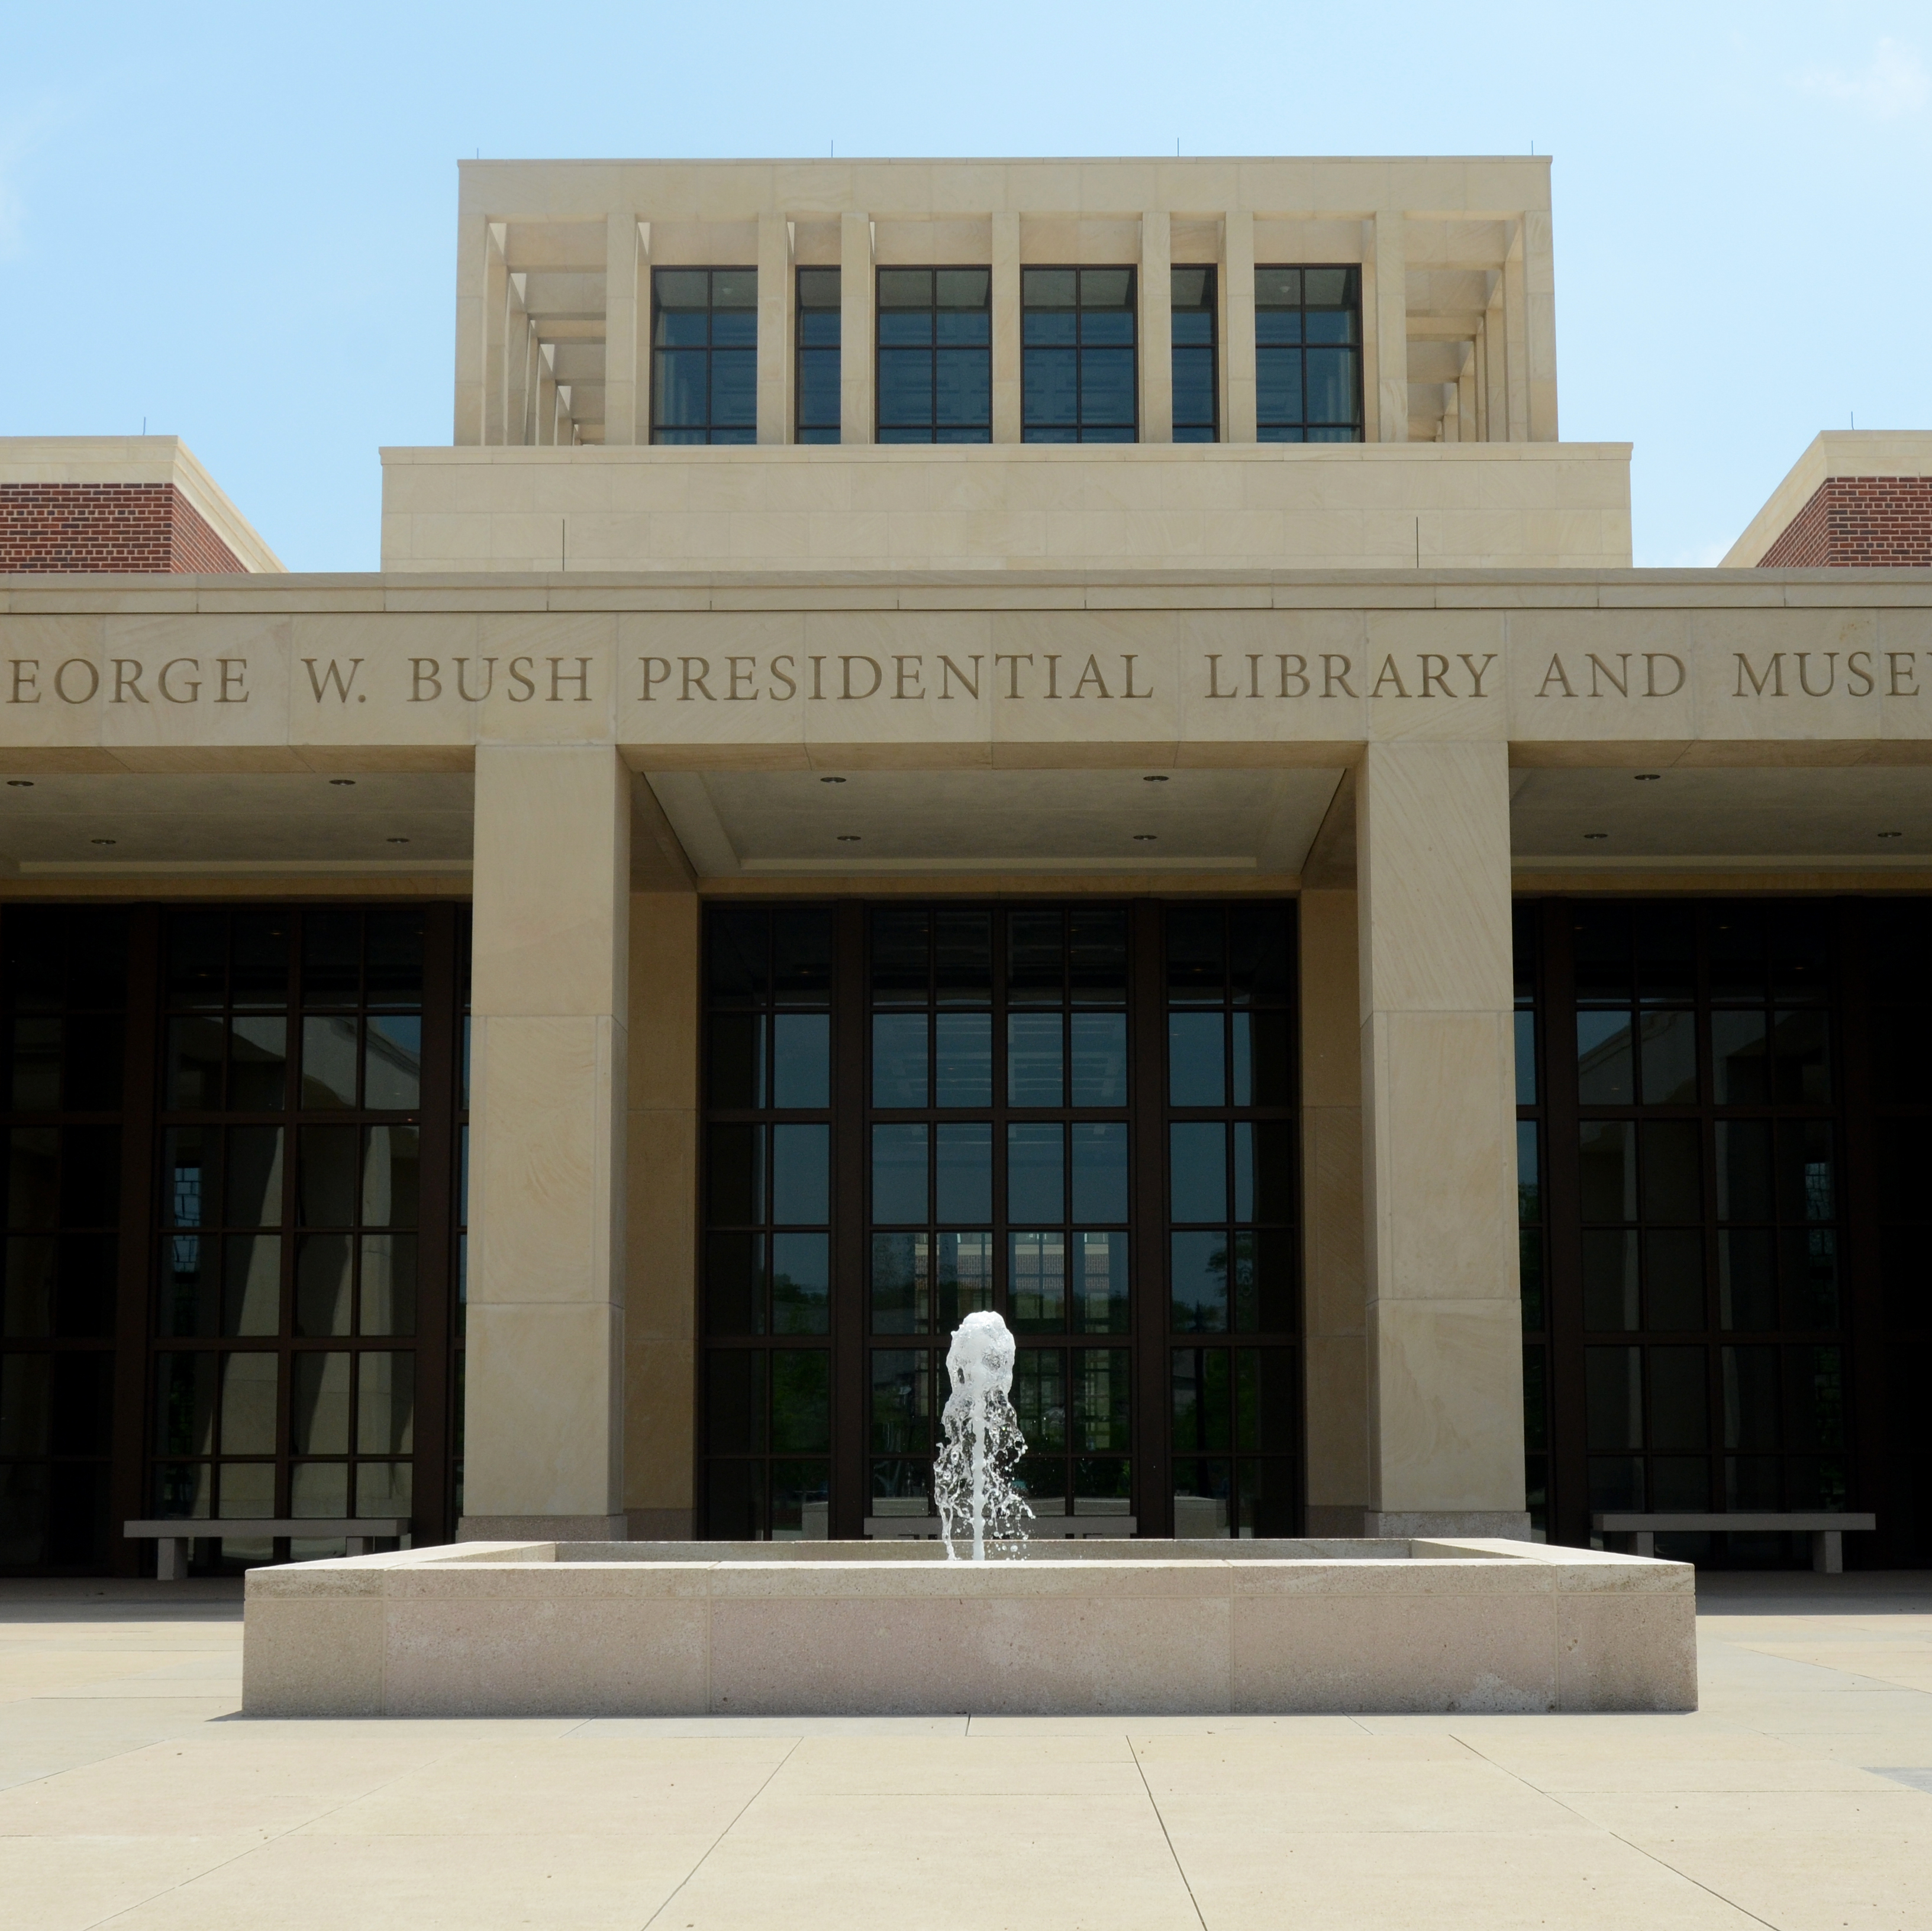 The George W. Bush Presidential Library and Museum in Dallas uses everything from news clips to interactive screens to artifacts to tell the story of Bush's eight years in office.